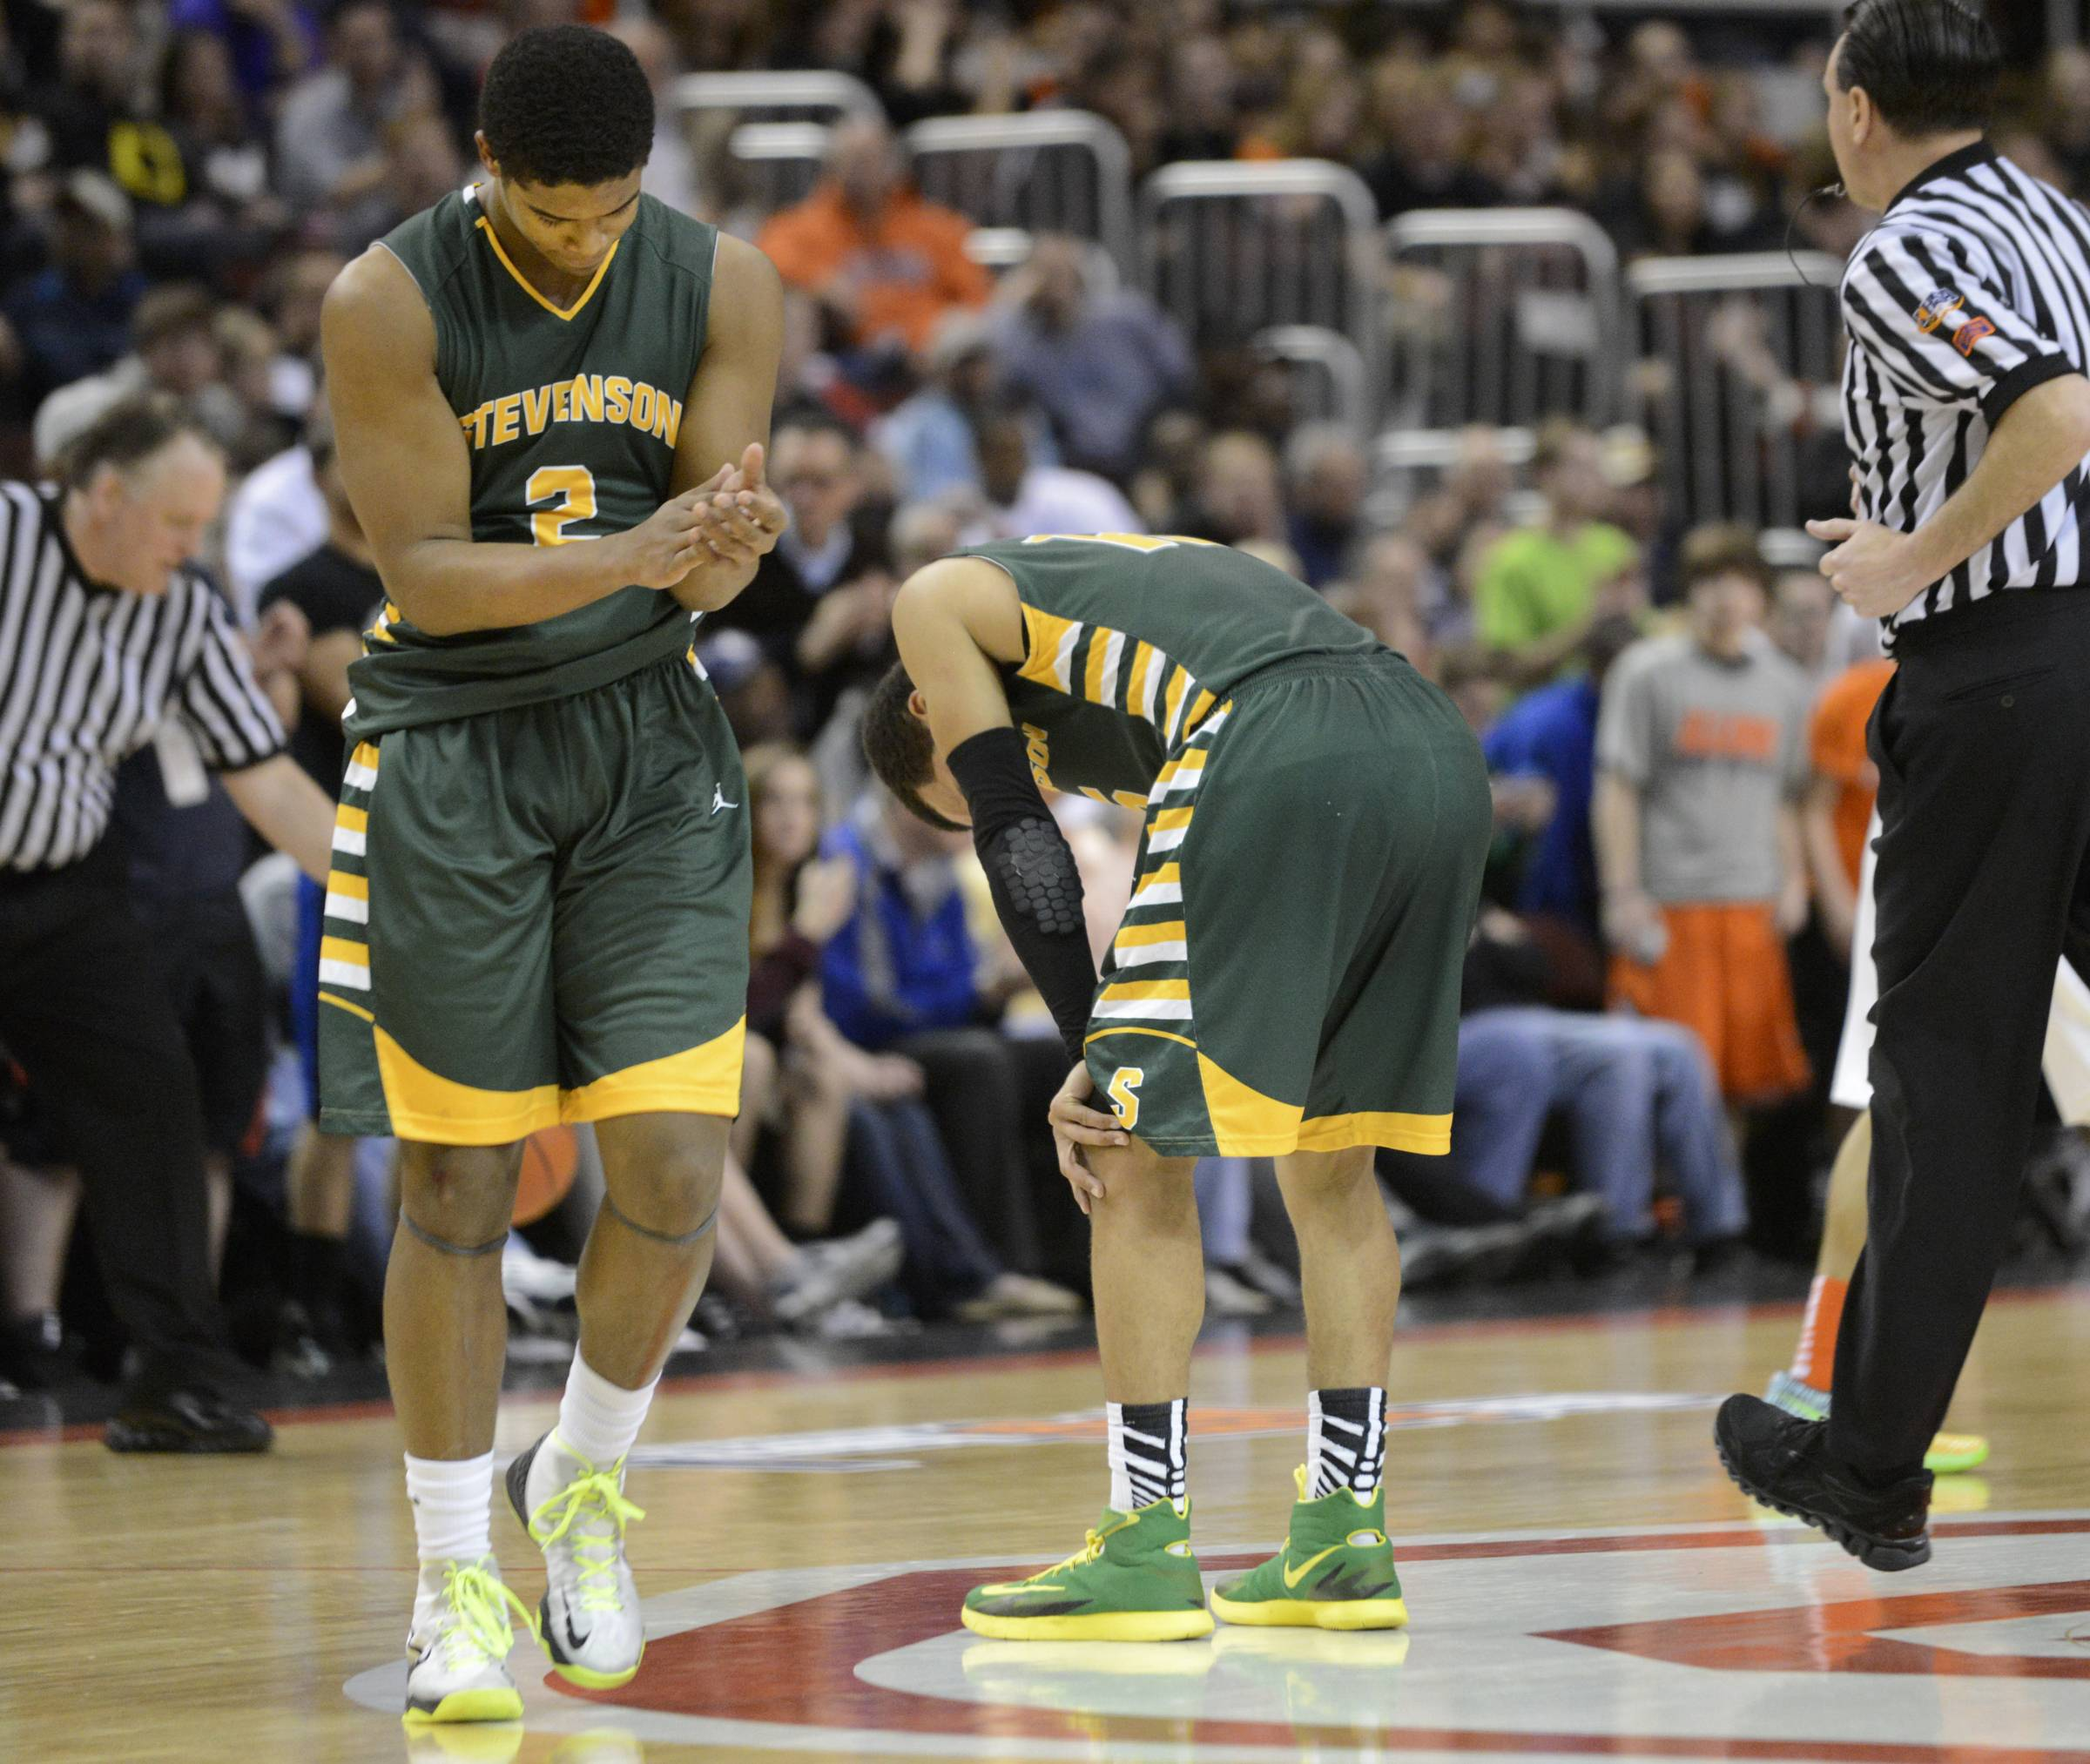 Stevenson's Jalen Brunson puts his hands on his knees as teammate Cameron Green walks off the floor.